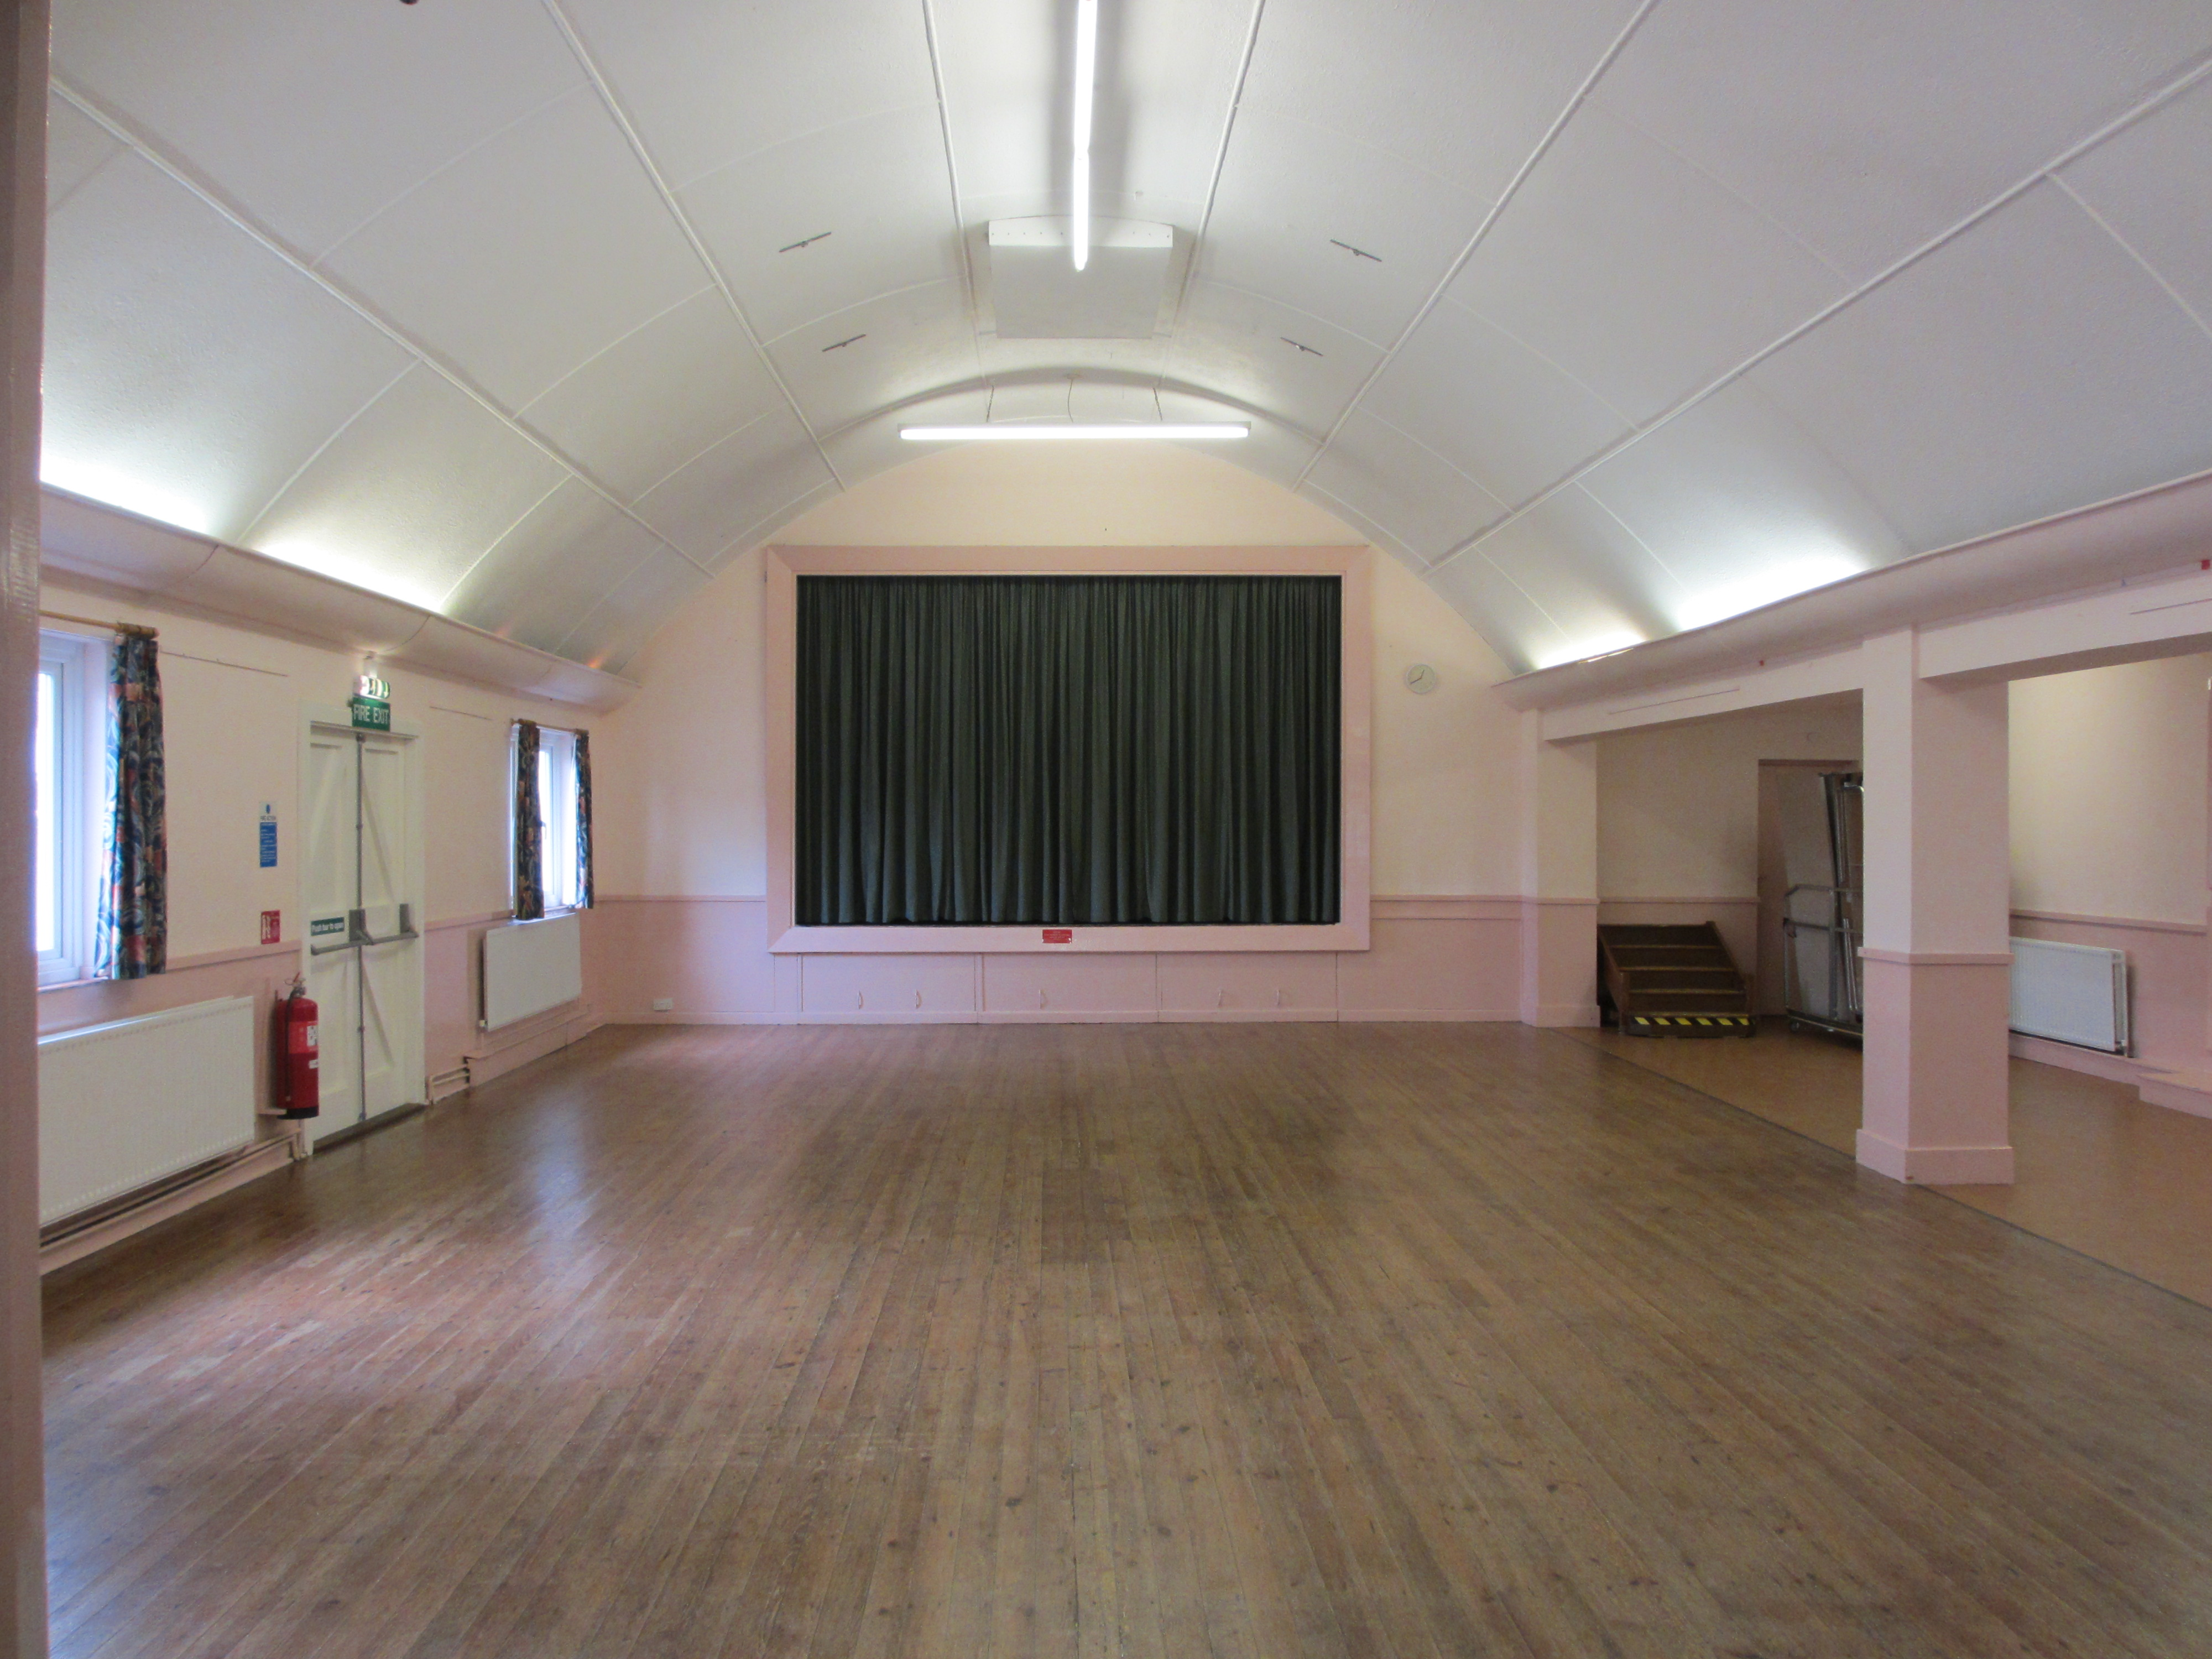 Alderbury Village Hall